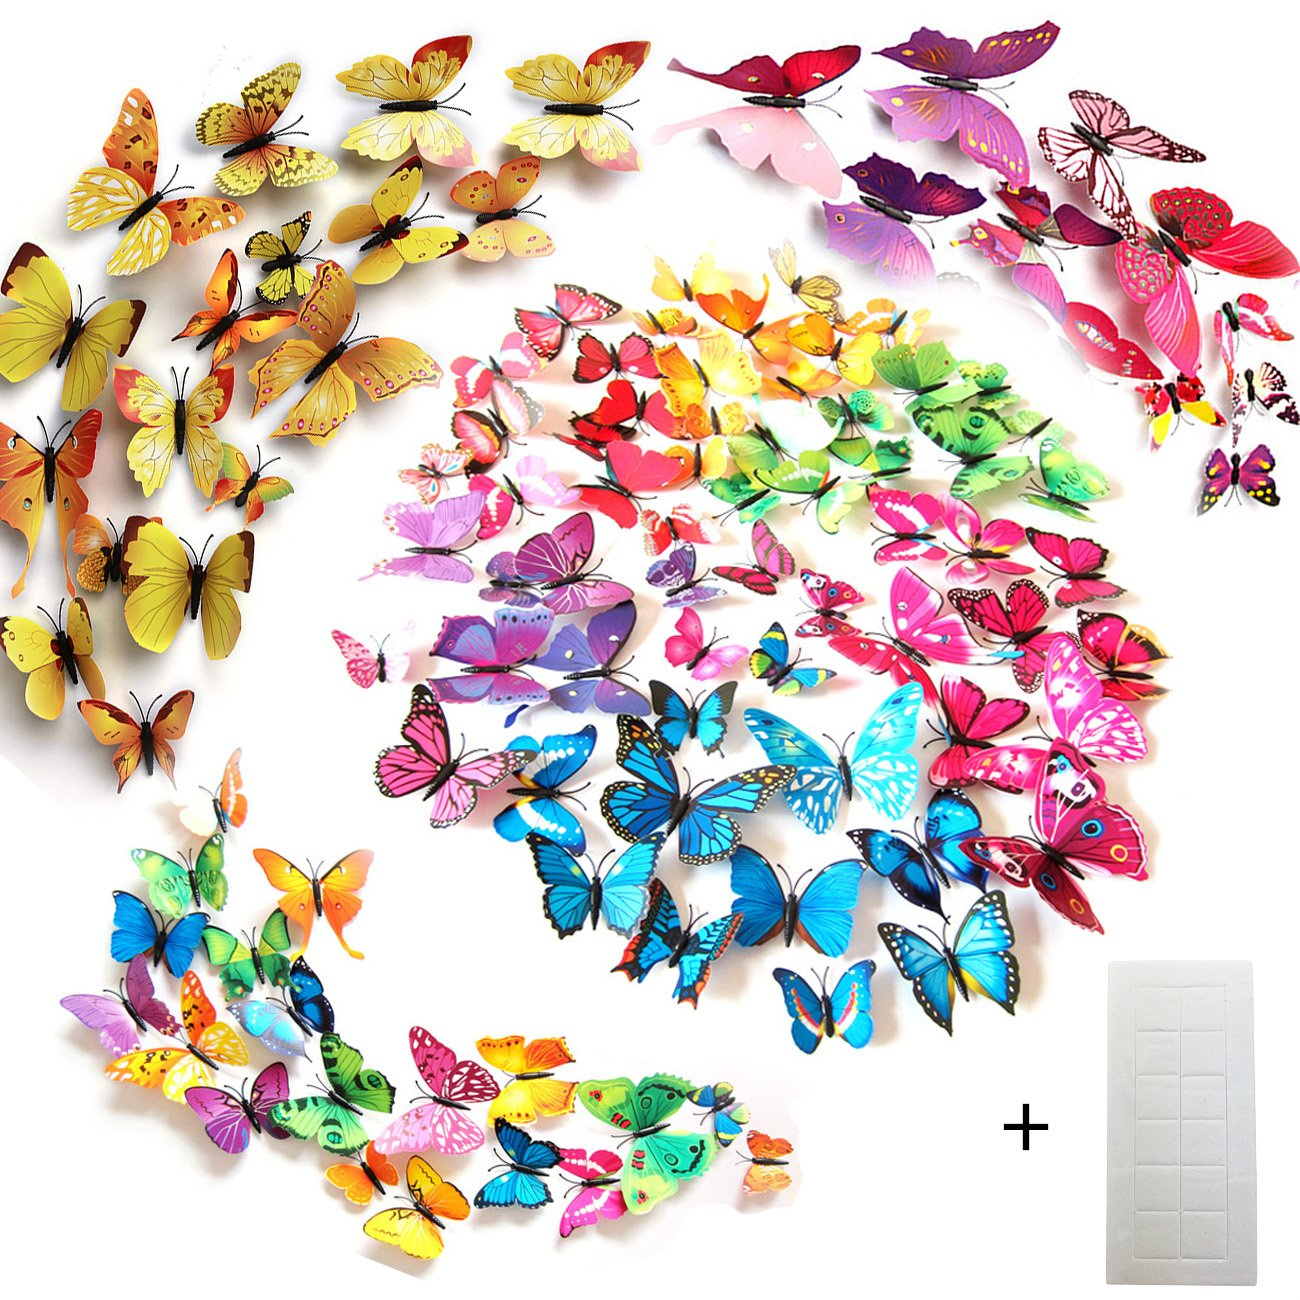 96 farfalle decorative colori assortiti farfalle 3d - Farfalle decorative per pareti ...